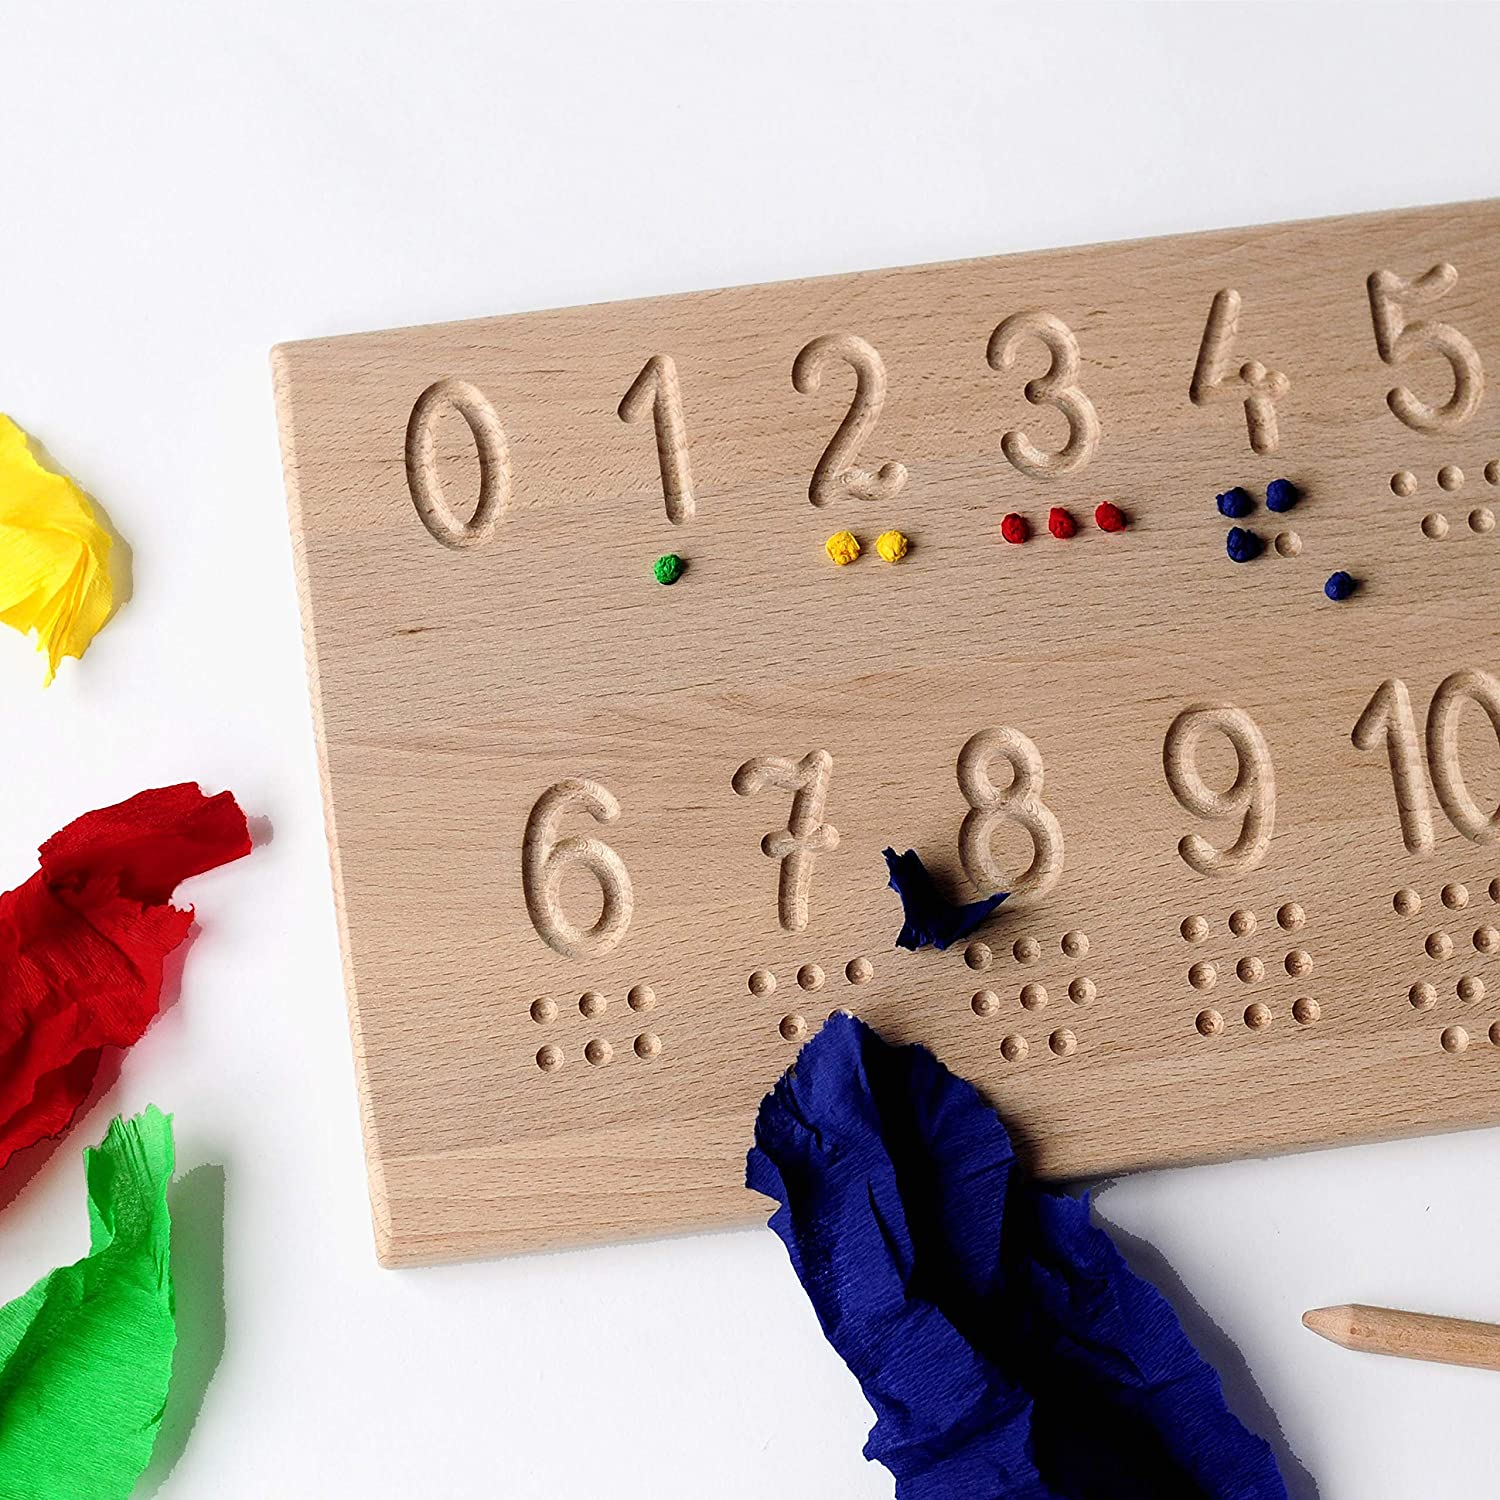 writing and counting learning Numbers tracing board educative toy